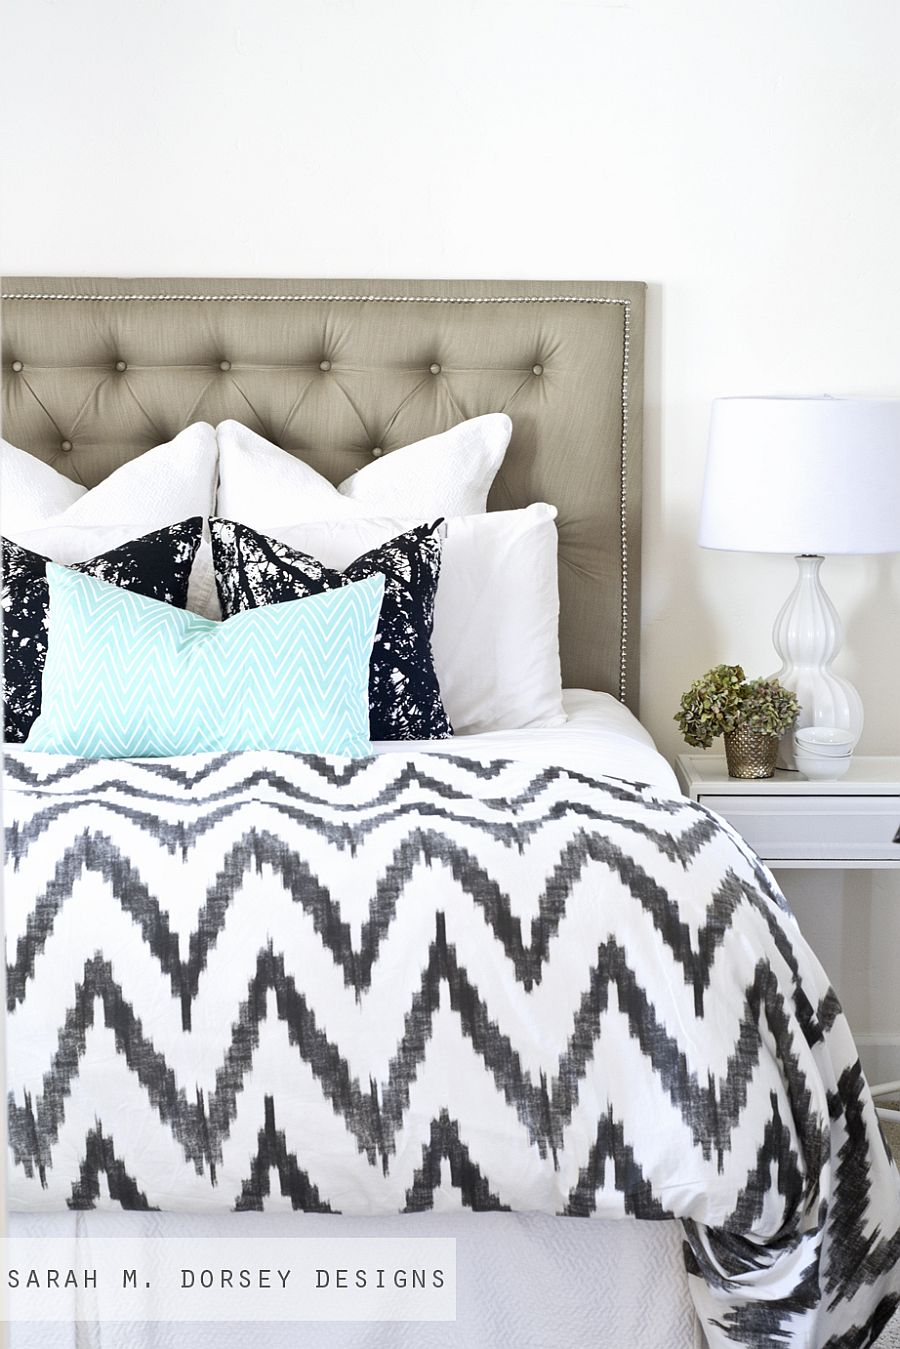 Contemporary DIY tufted headboard in chic gray is a showstopper in an understated fashion